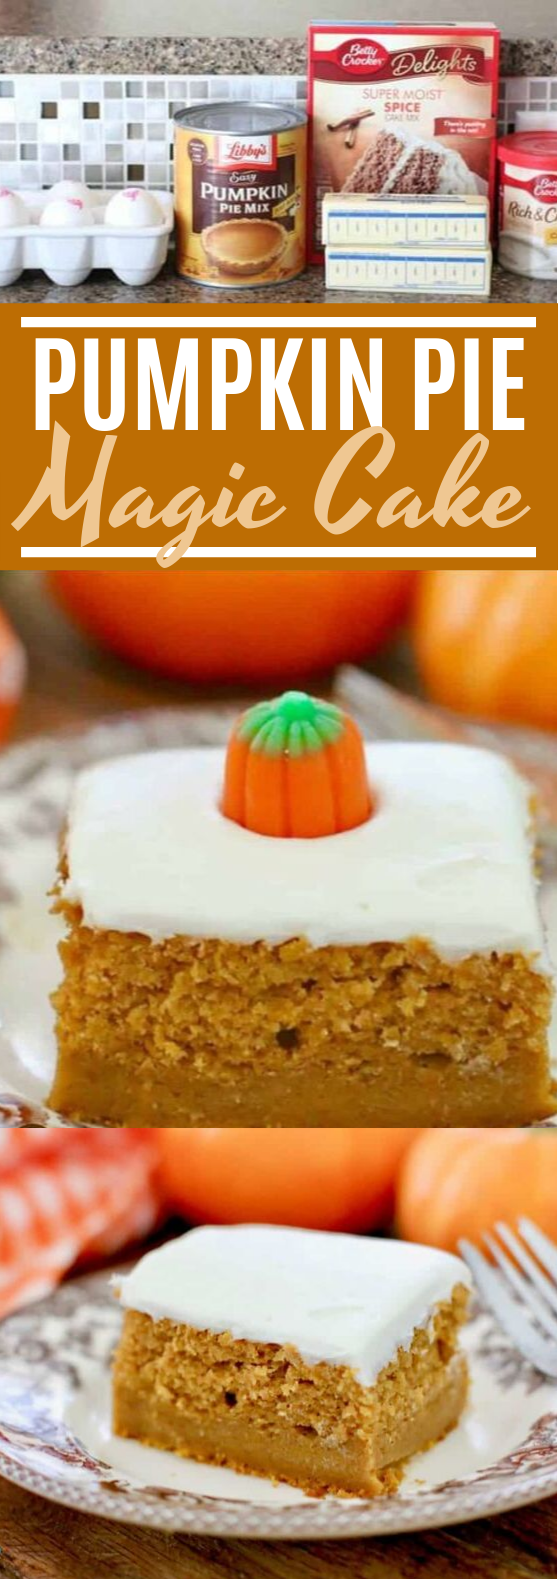 Pumpkin Pie Magic Cake #desserts #cake